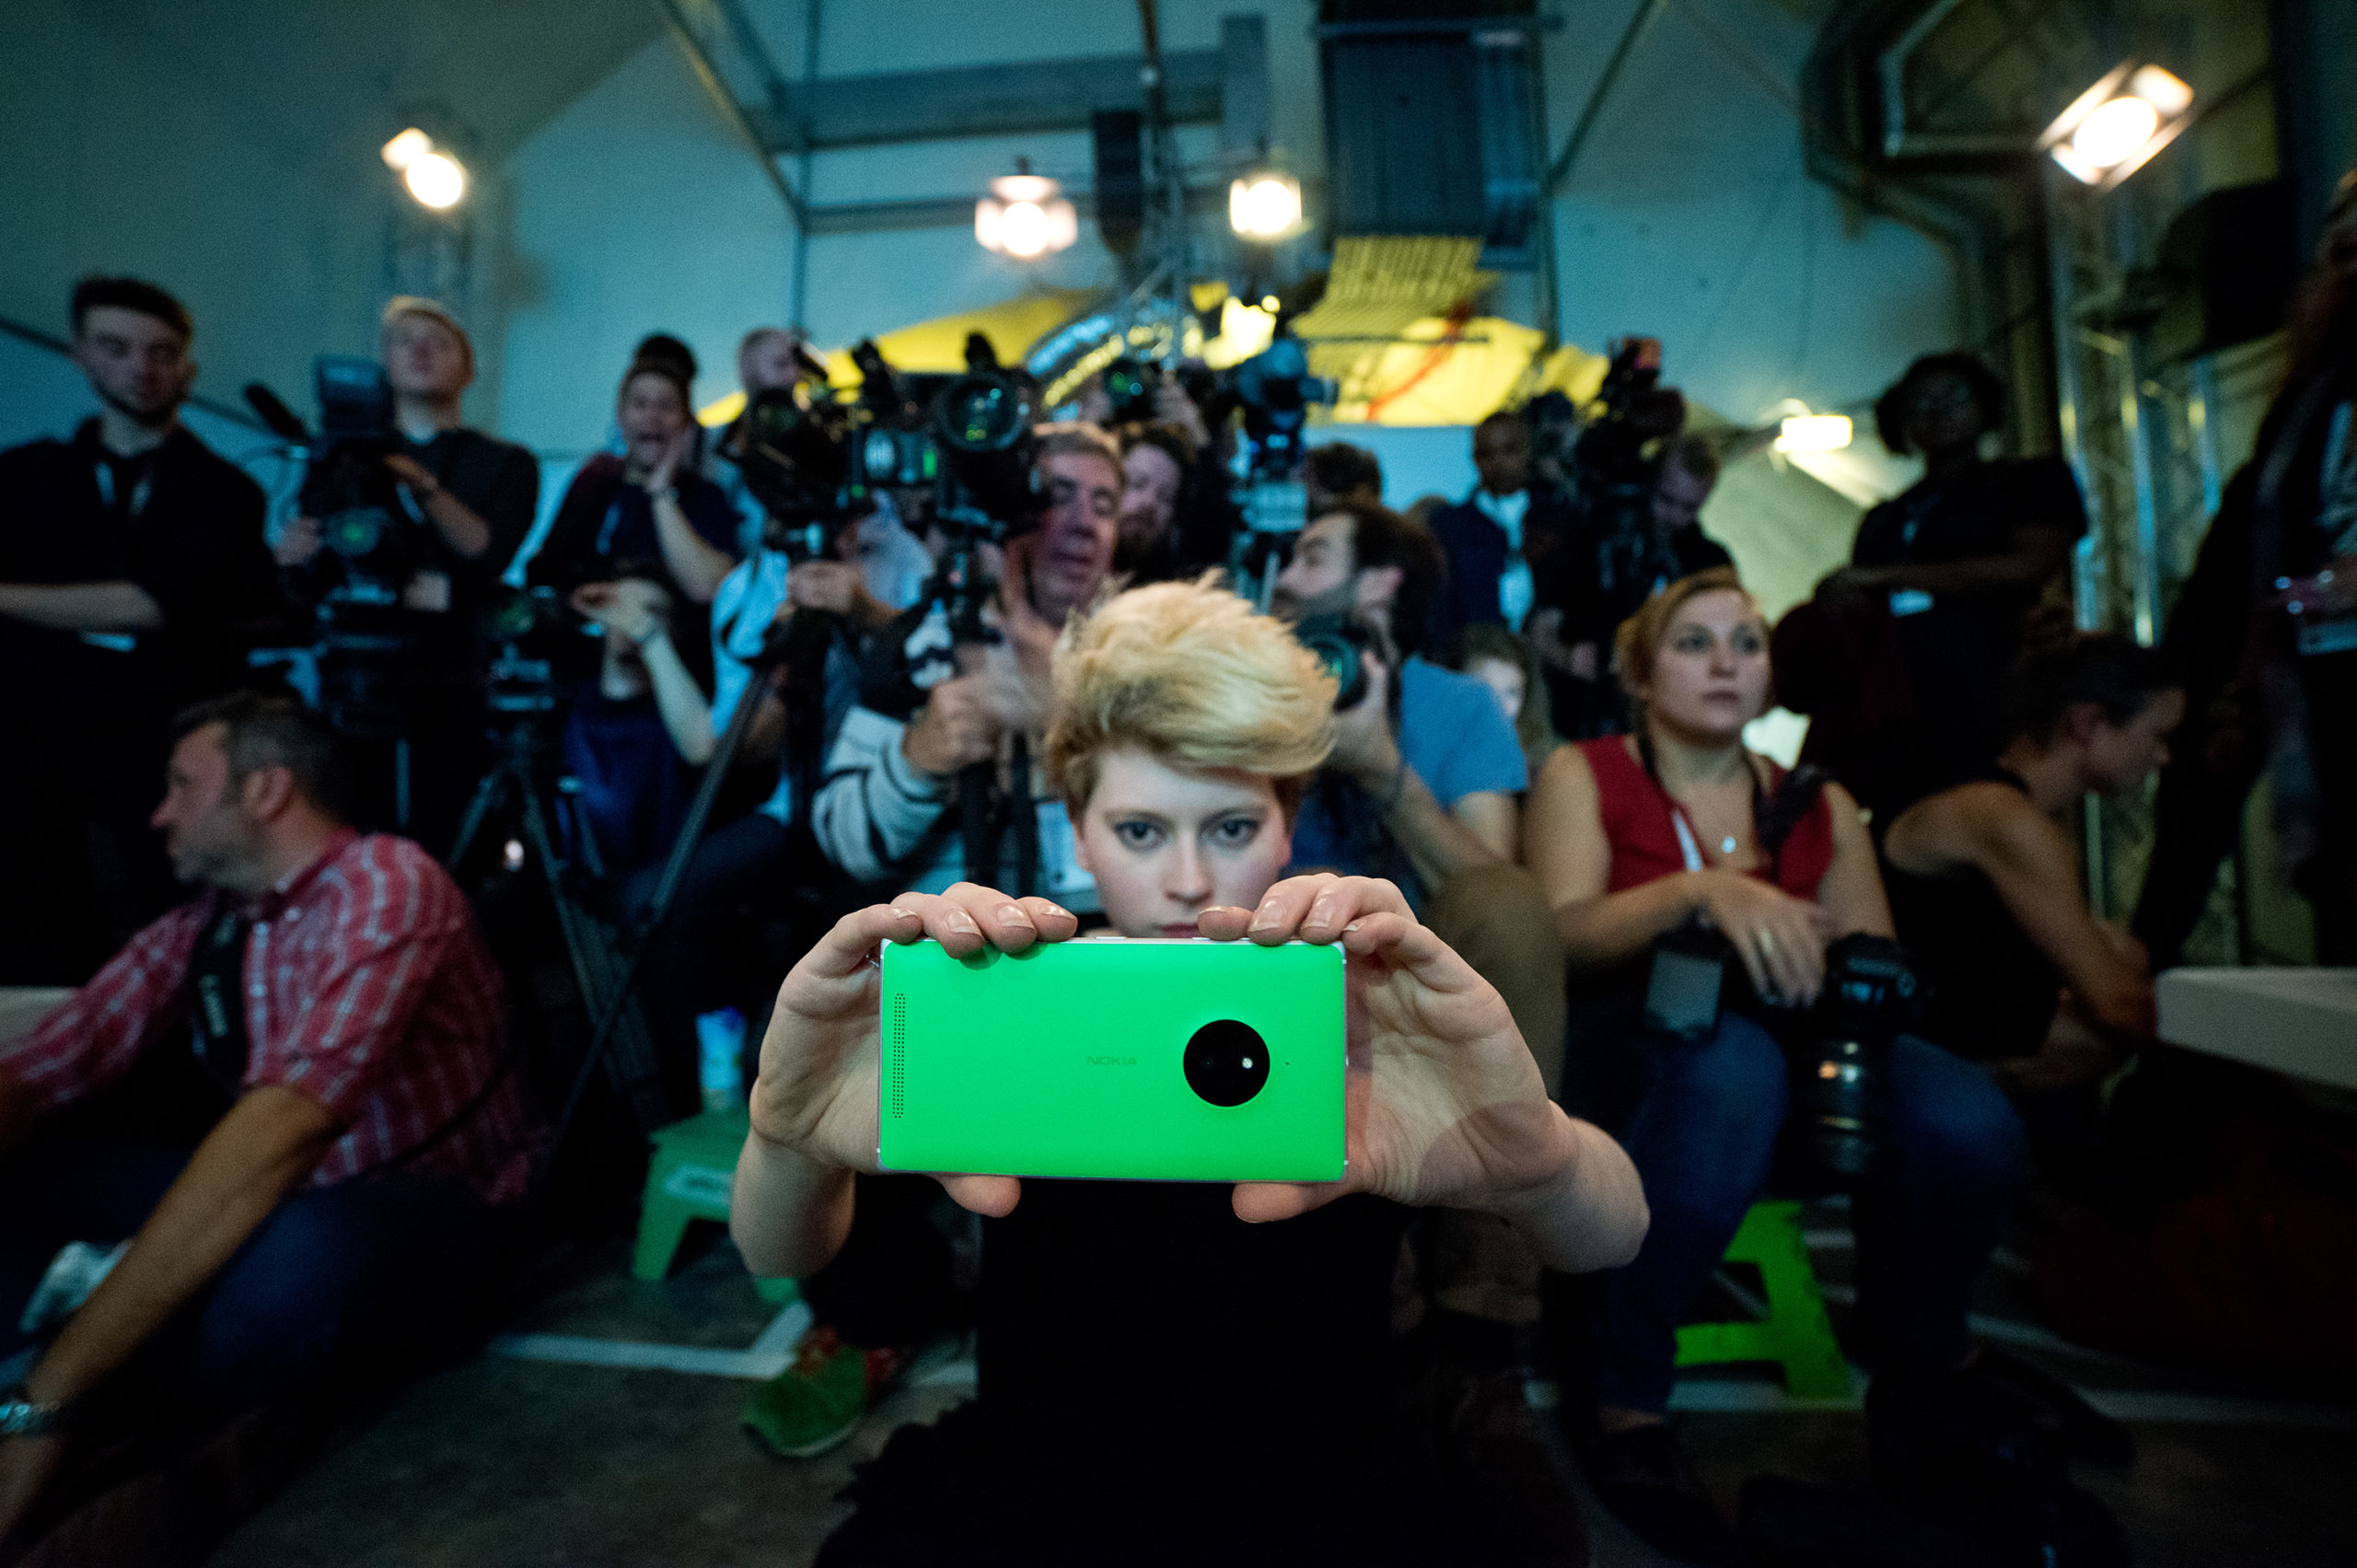 Girl holding smart phone in front of crowd at a fashion show, Fashion Innovation Agency